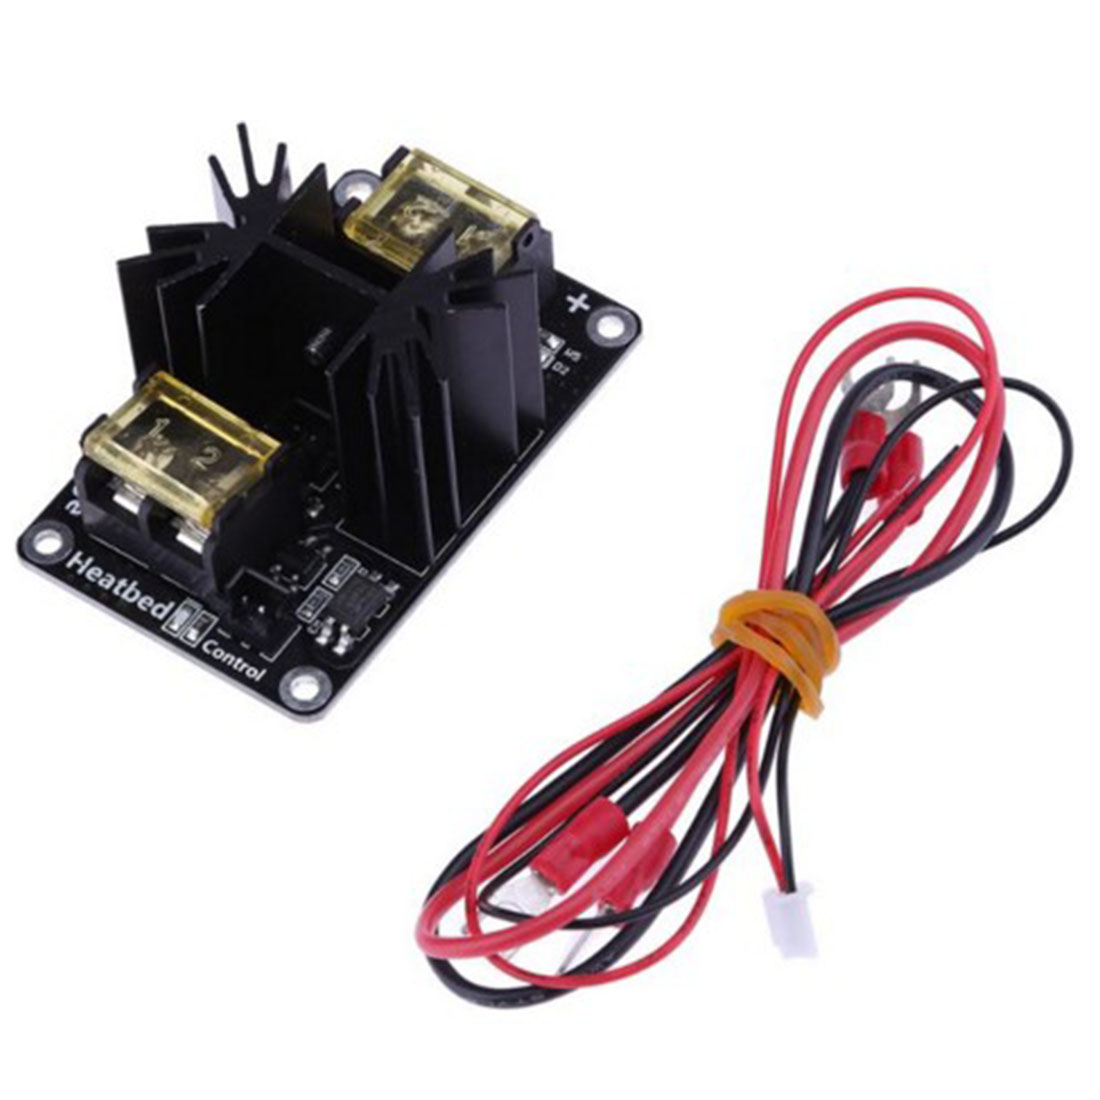 Etmakit pro 3D Printer Parts General Add-on Heated Bed Power Expansion Module High Current 210A MOSFET Upgrade RAMPS 1.4 EM88 цены онлайн